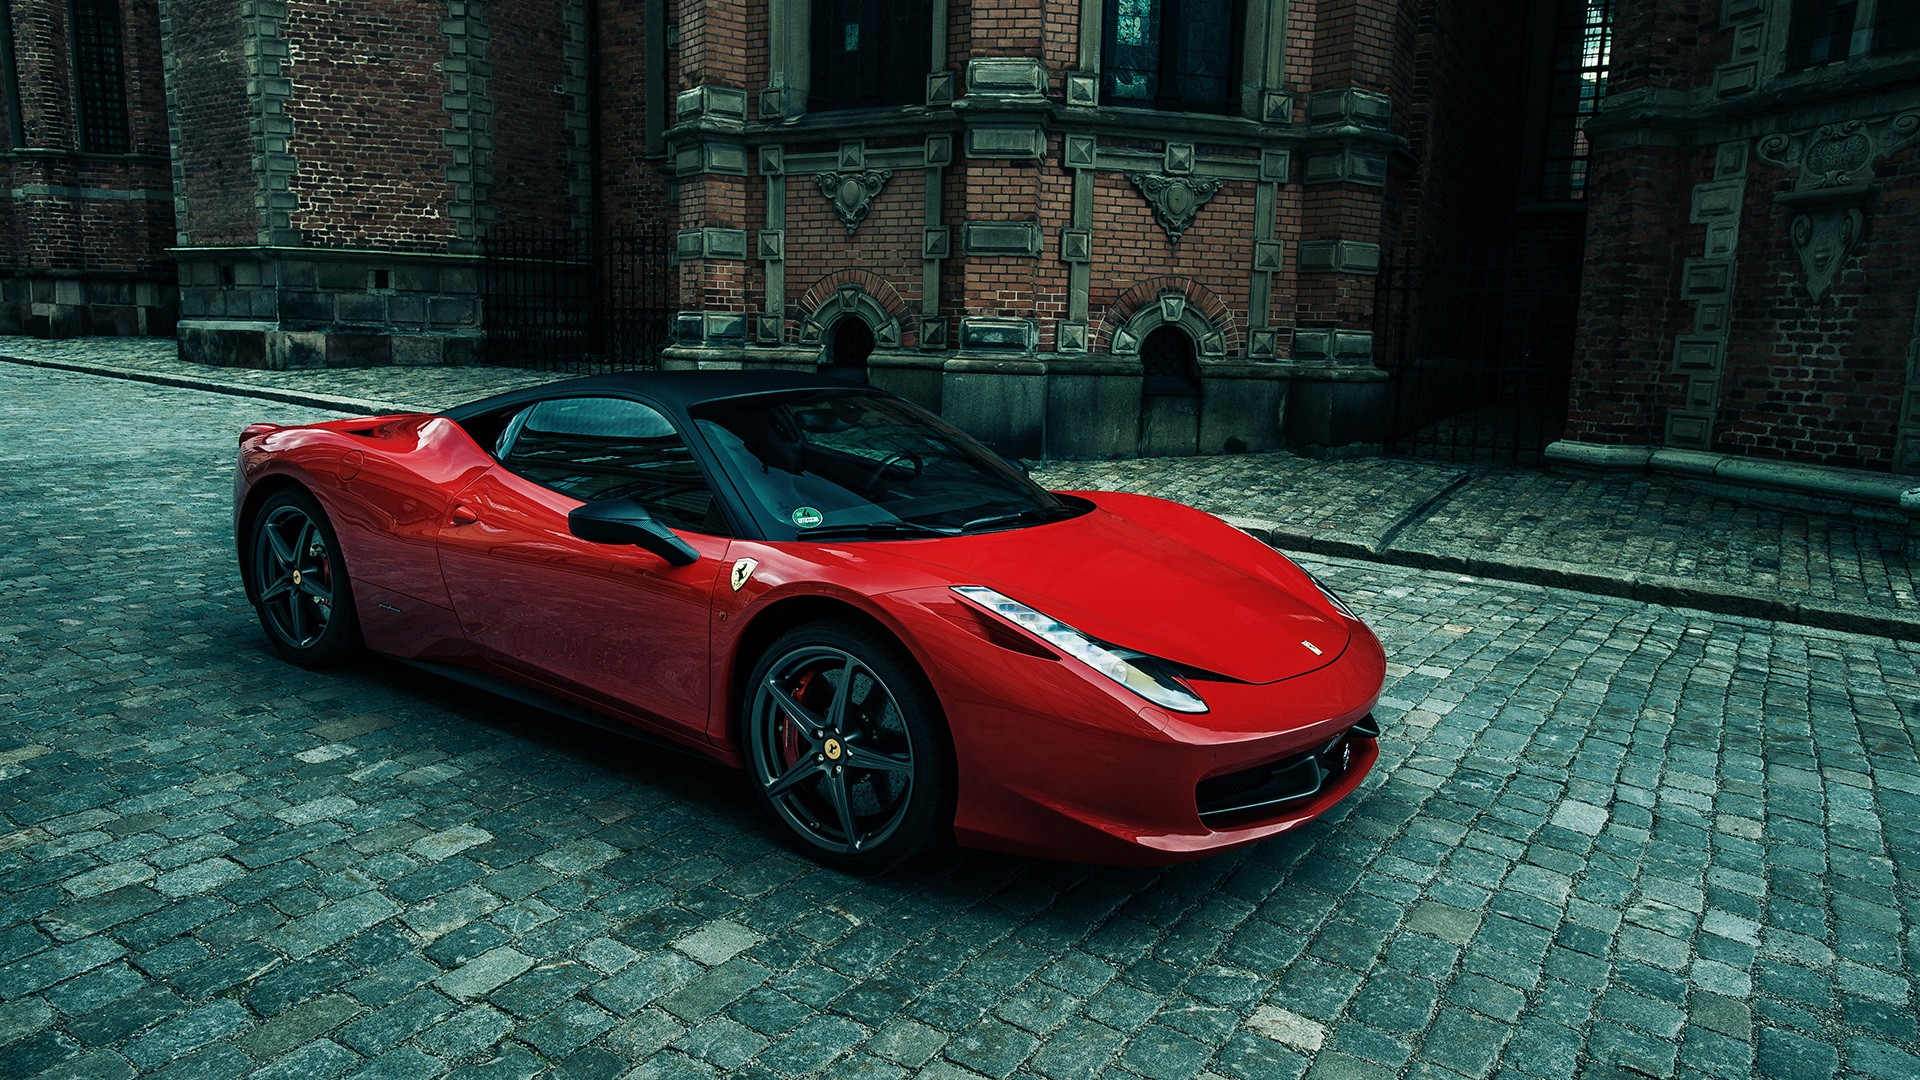 sporty ferrari 458 italia wallpaper hd car wallpapers id 3239. Black Bedroom Furniture Sets. Home Design Ideas